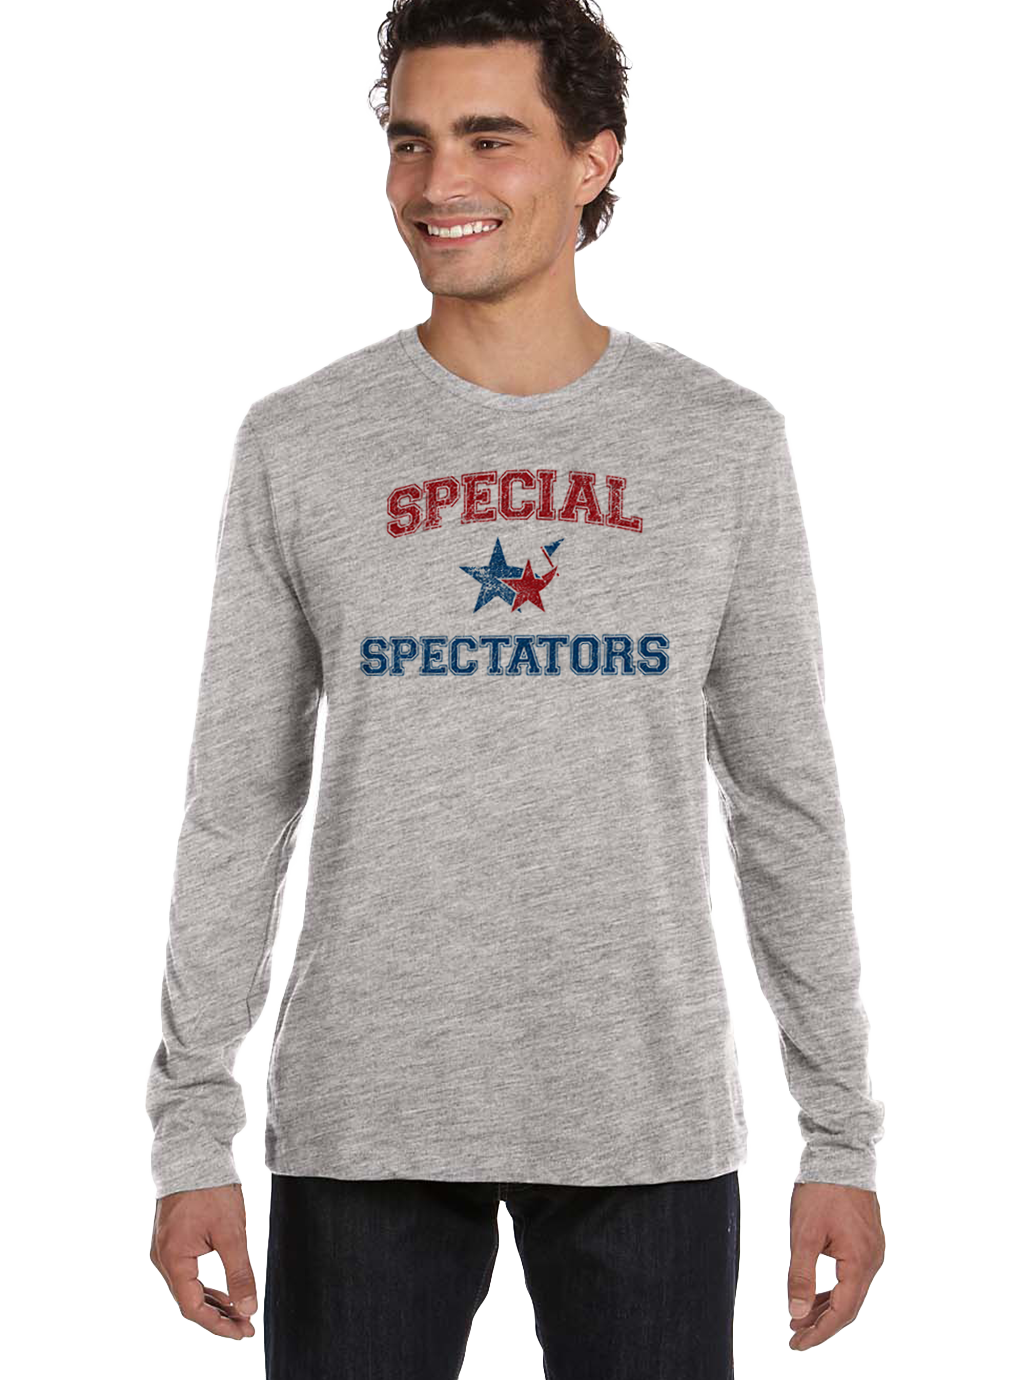 Special Spectators Long Sleeve T-Shirt